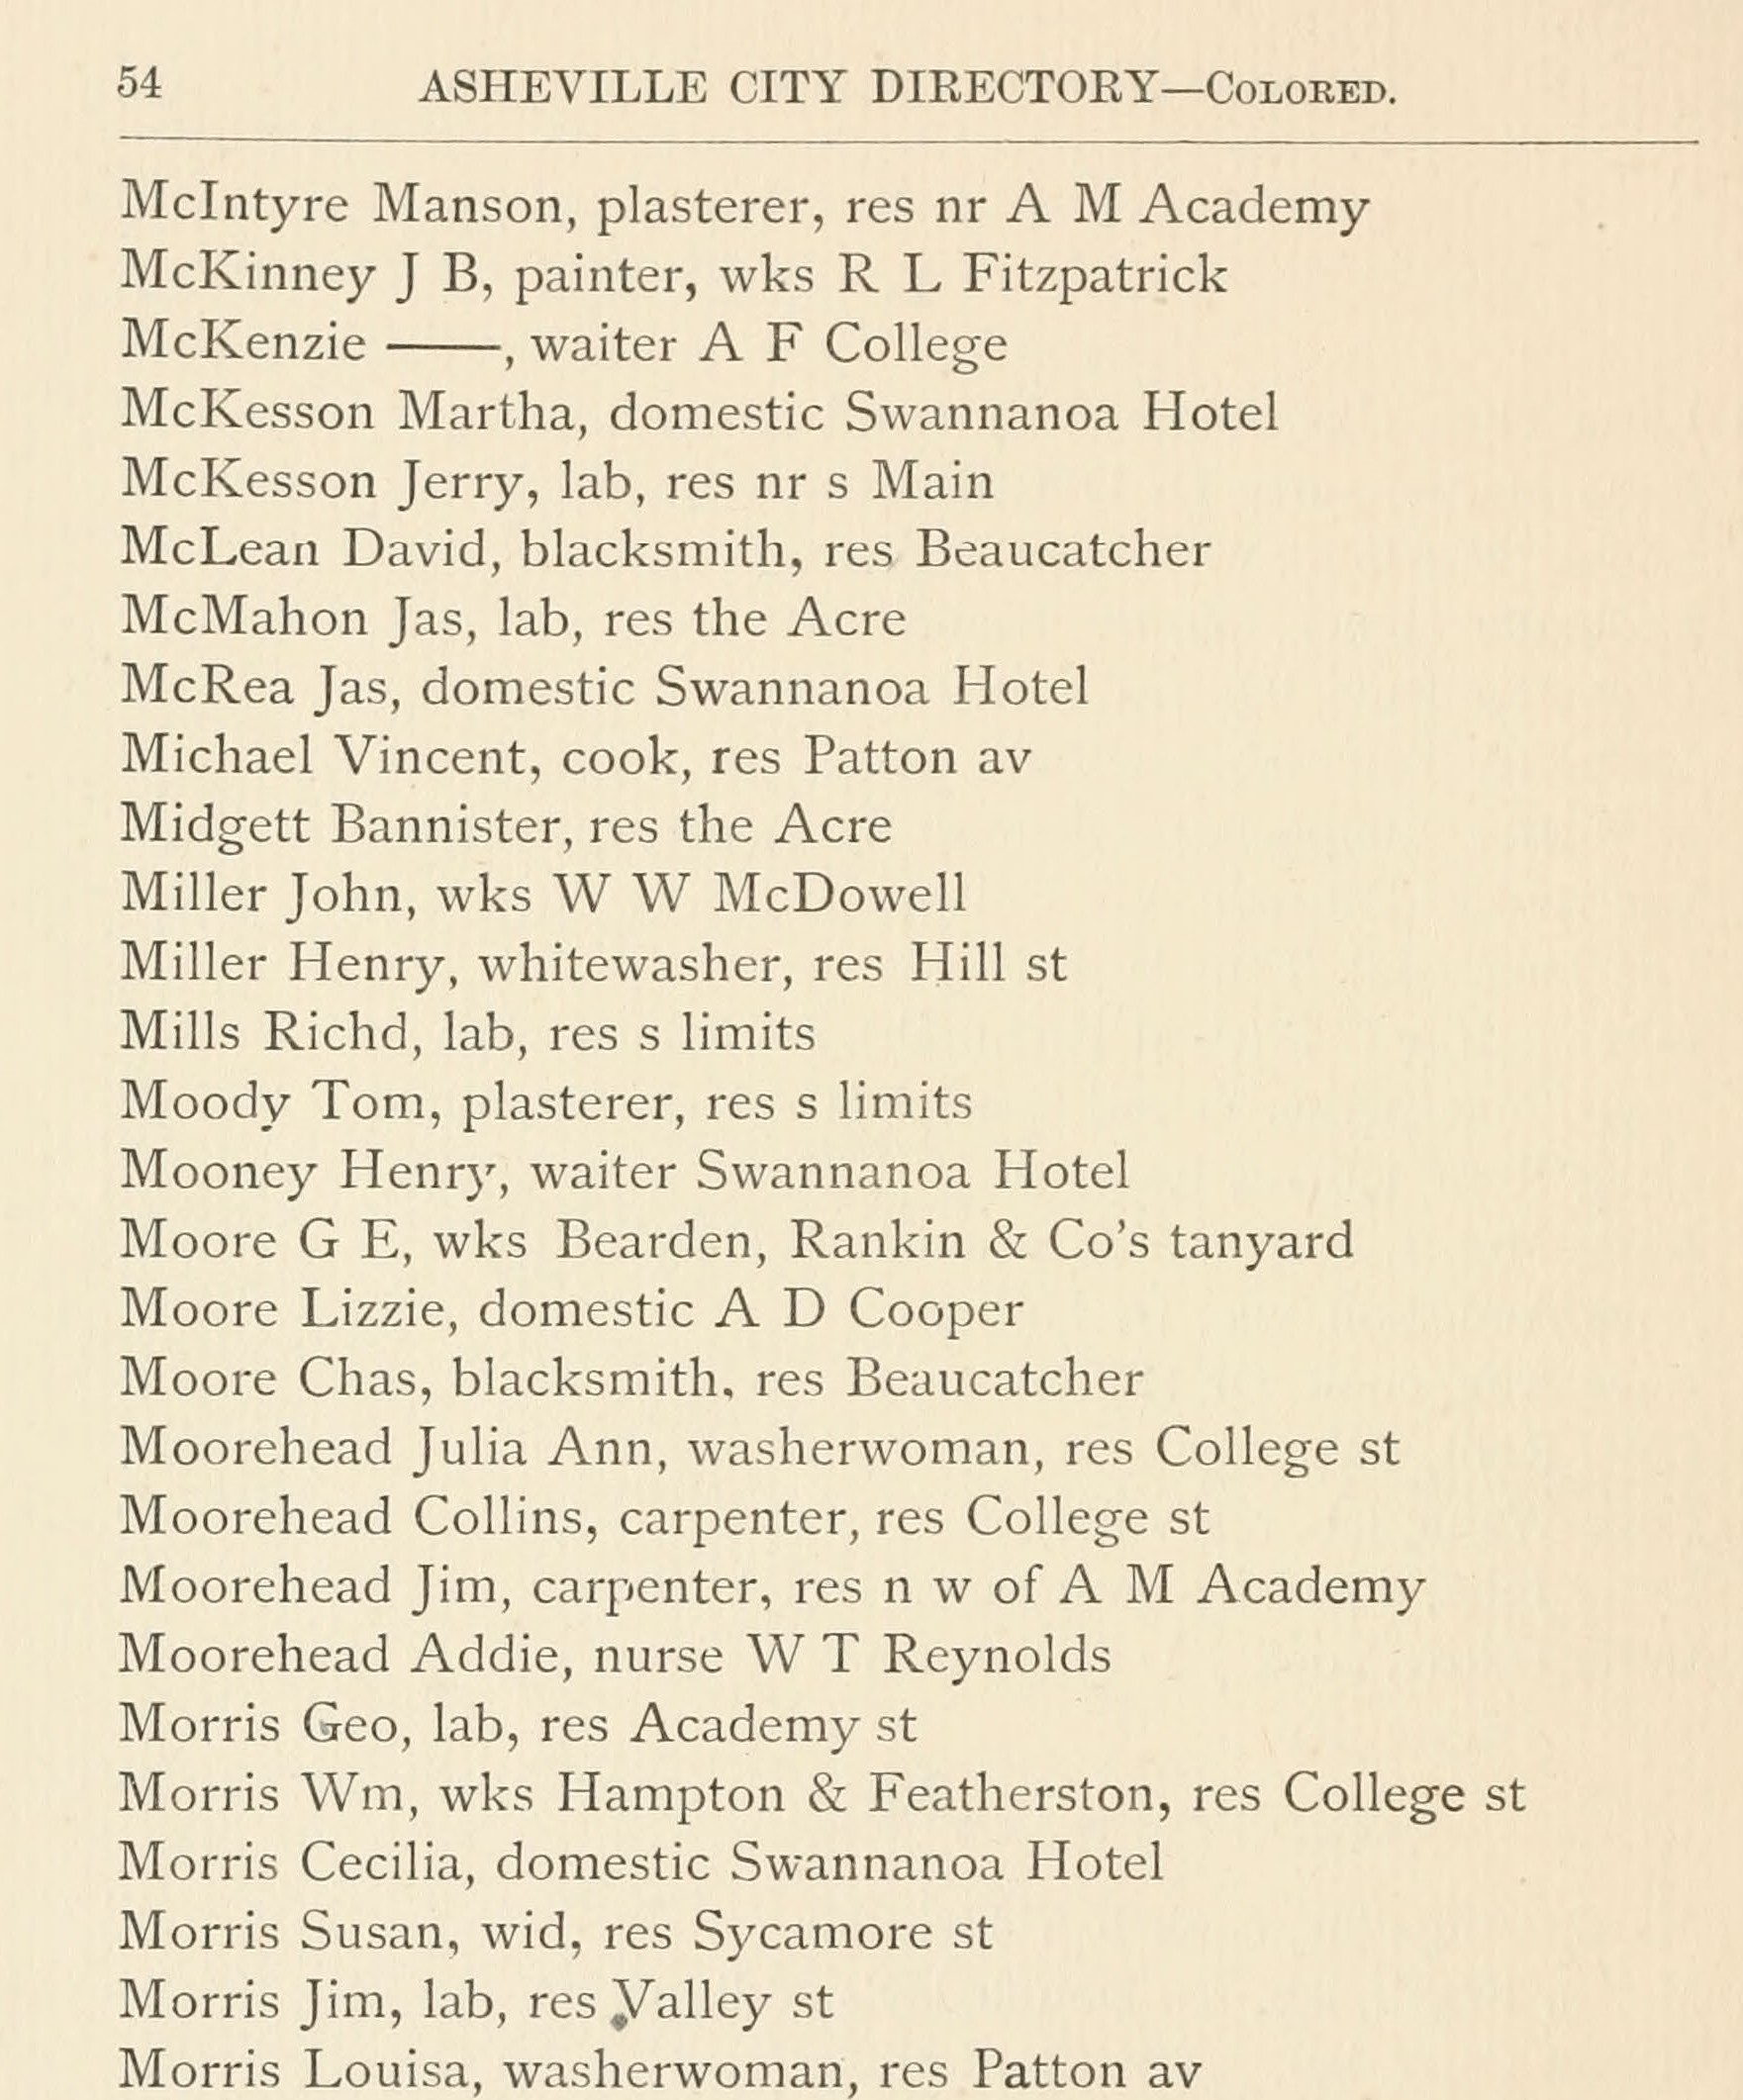 A page from the 1883-84 Asheville City Directory, indicating Louisa Morris working as a washerwoman and residing on Patton Avenue